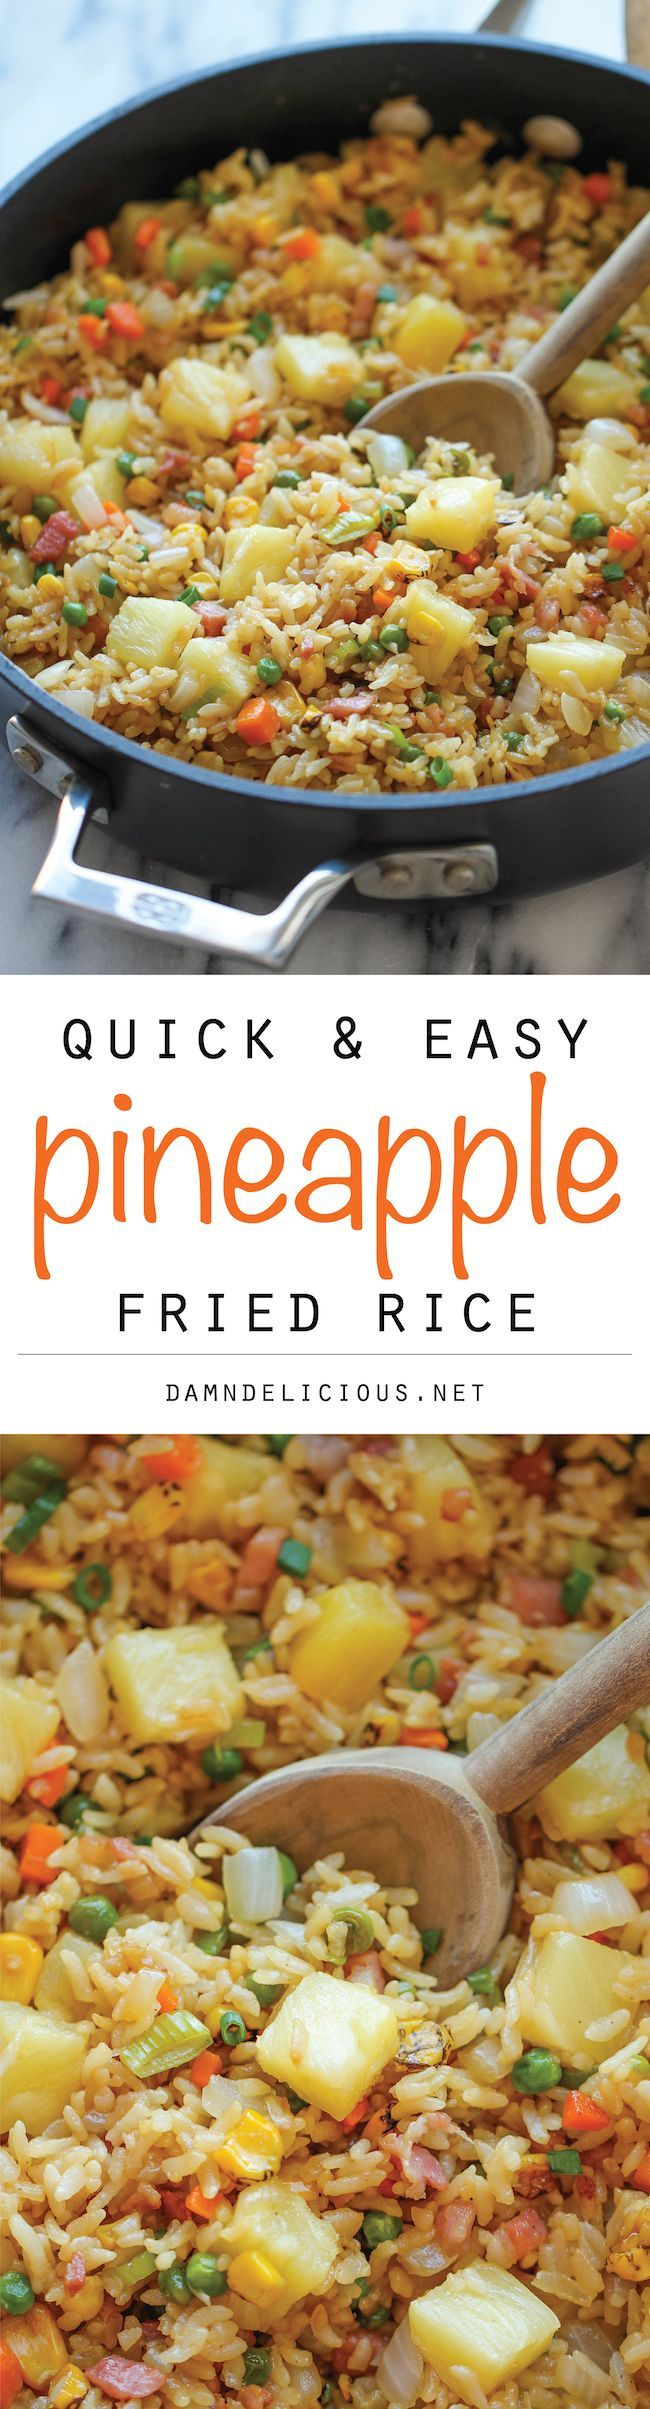 Pineapple Fried Rice ~ A quick and easy weeknight meal that's so much cheaper, tastier and healthier than take-out!